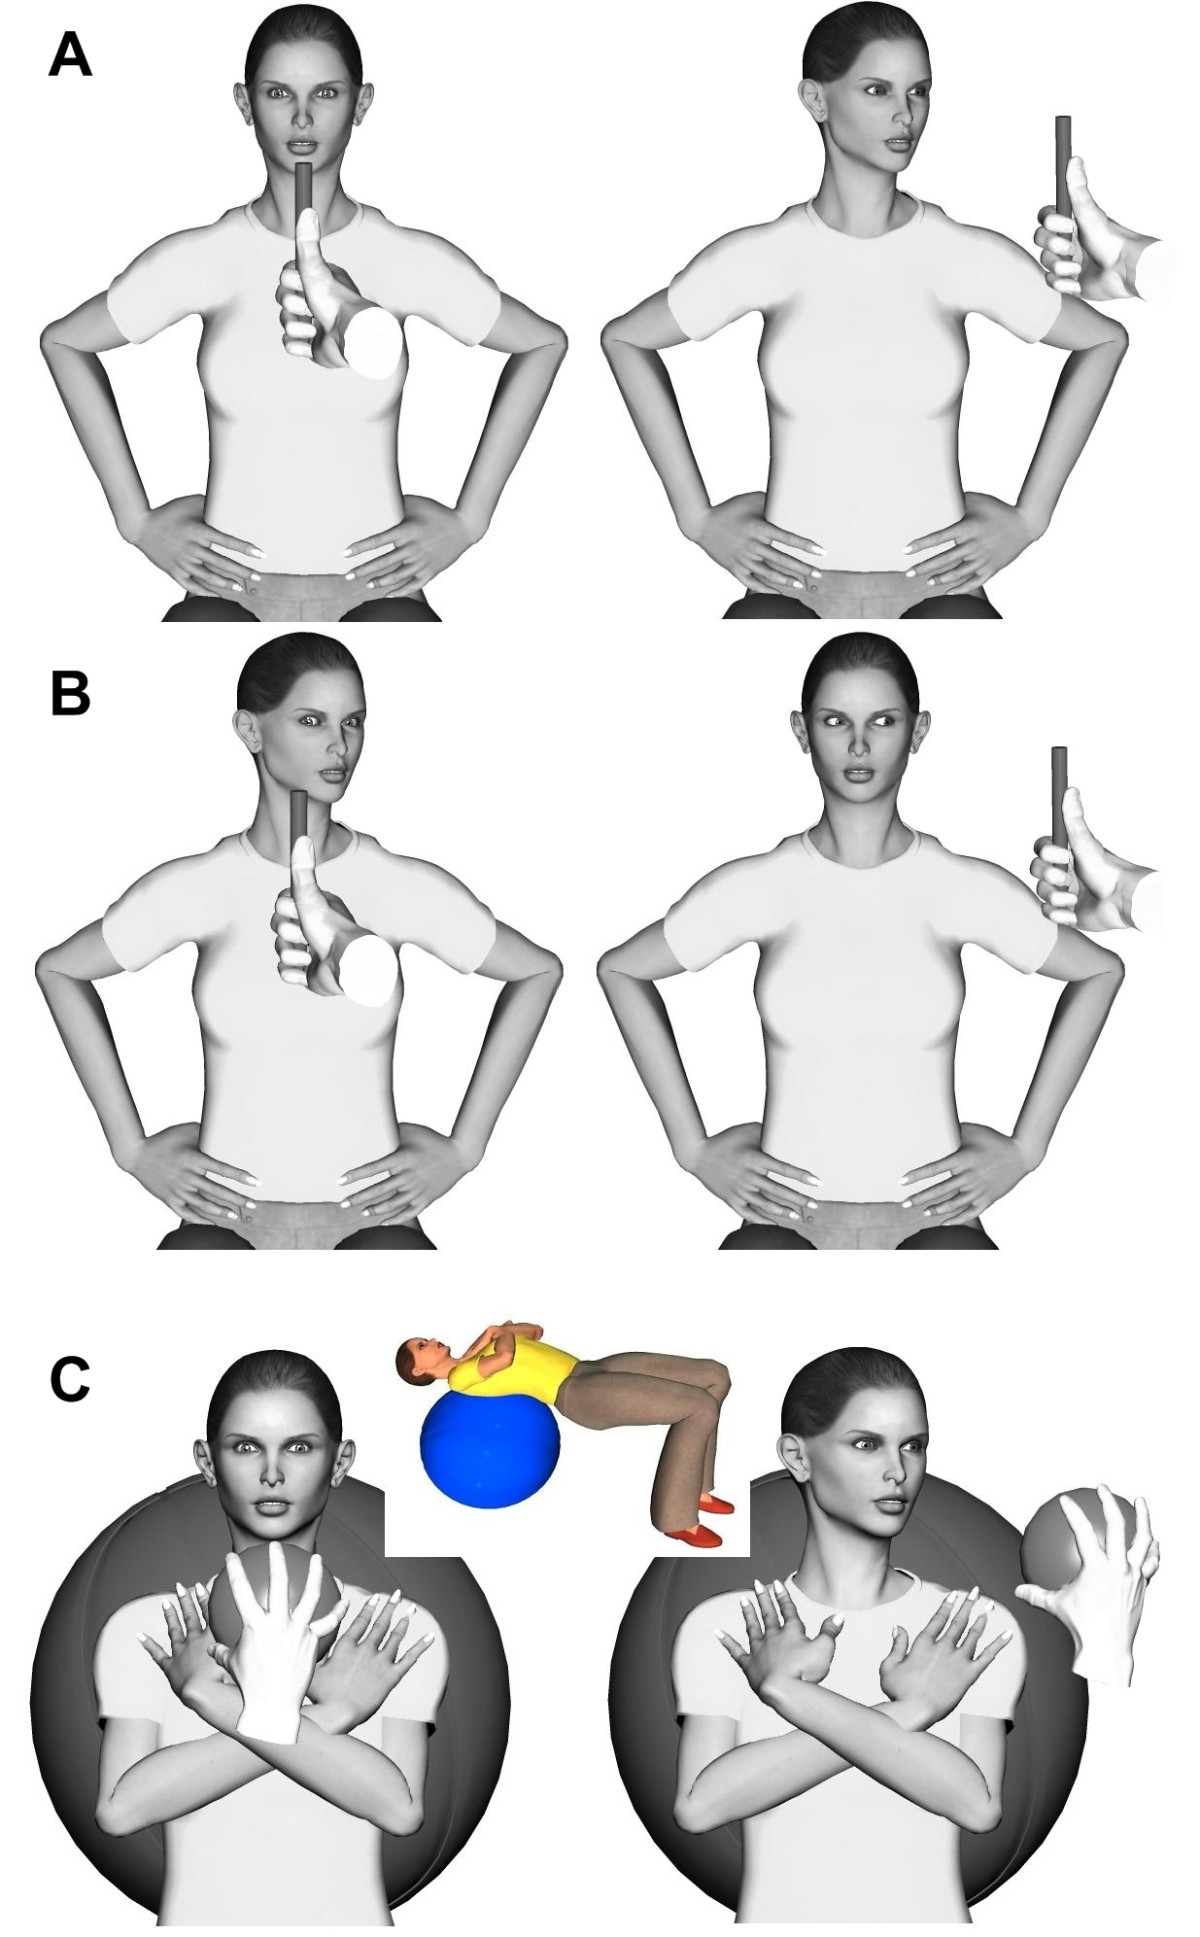 http://static-content.springer.com/image/art%3A10.1186%2F1746-1340-16-15/MediaObjects/12998_2008_Article_87_Fig2_HTML.jpg